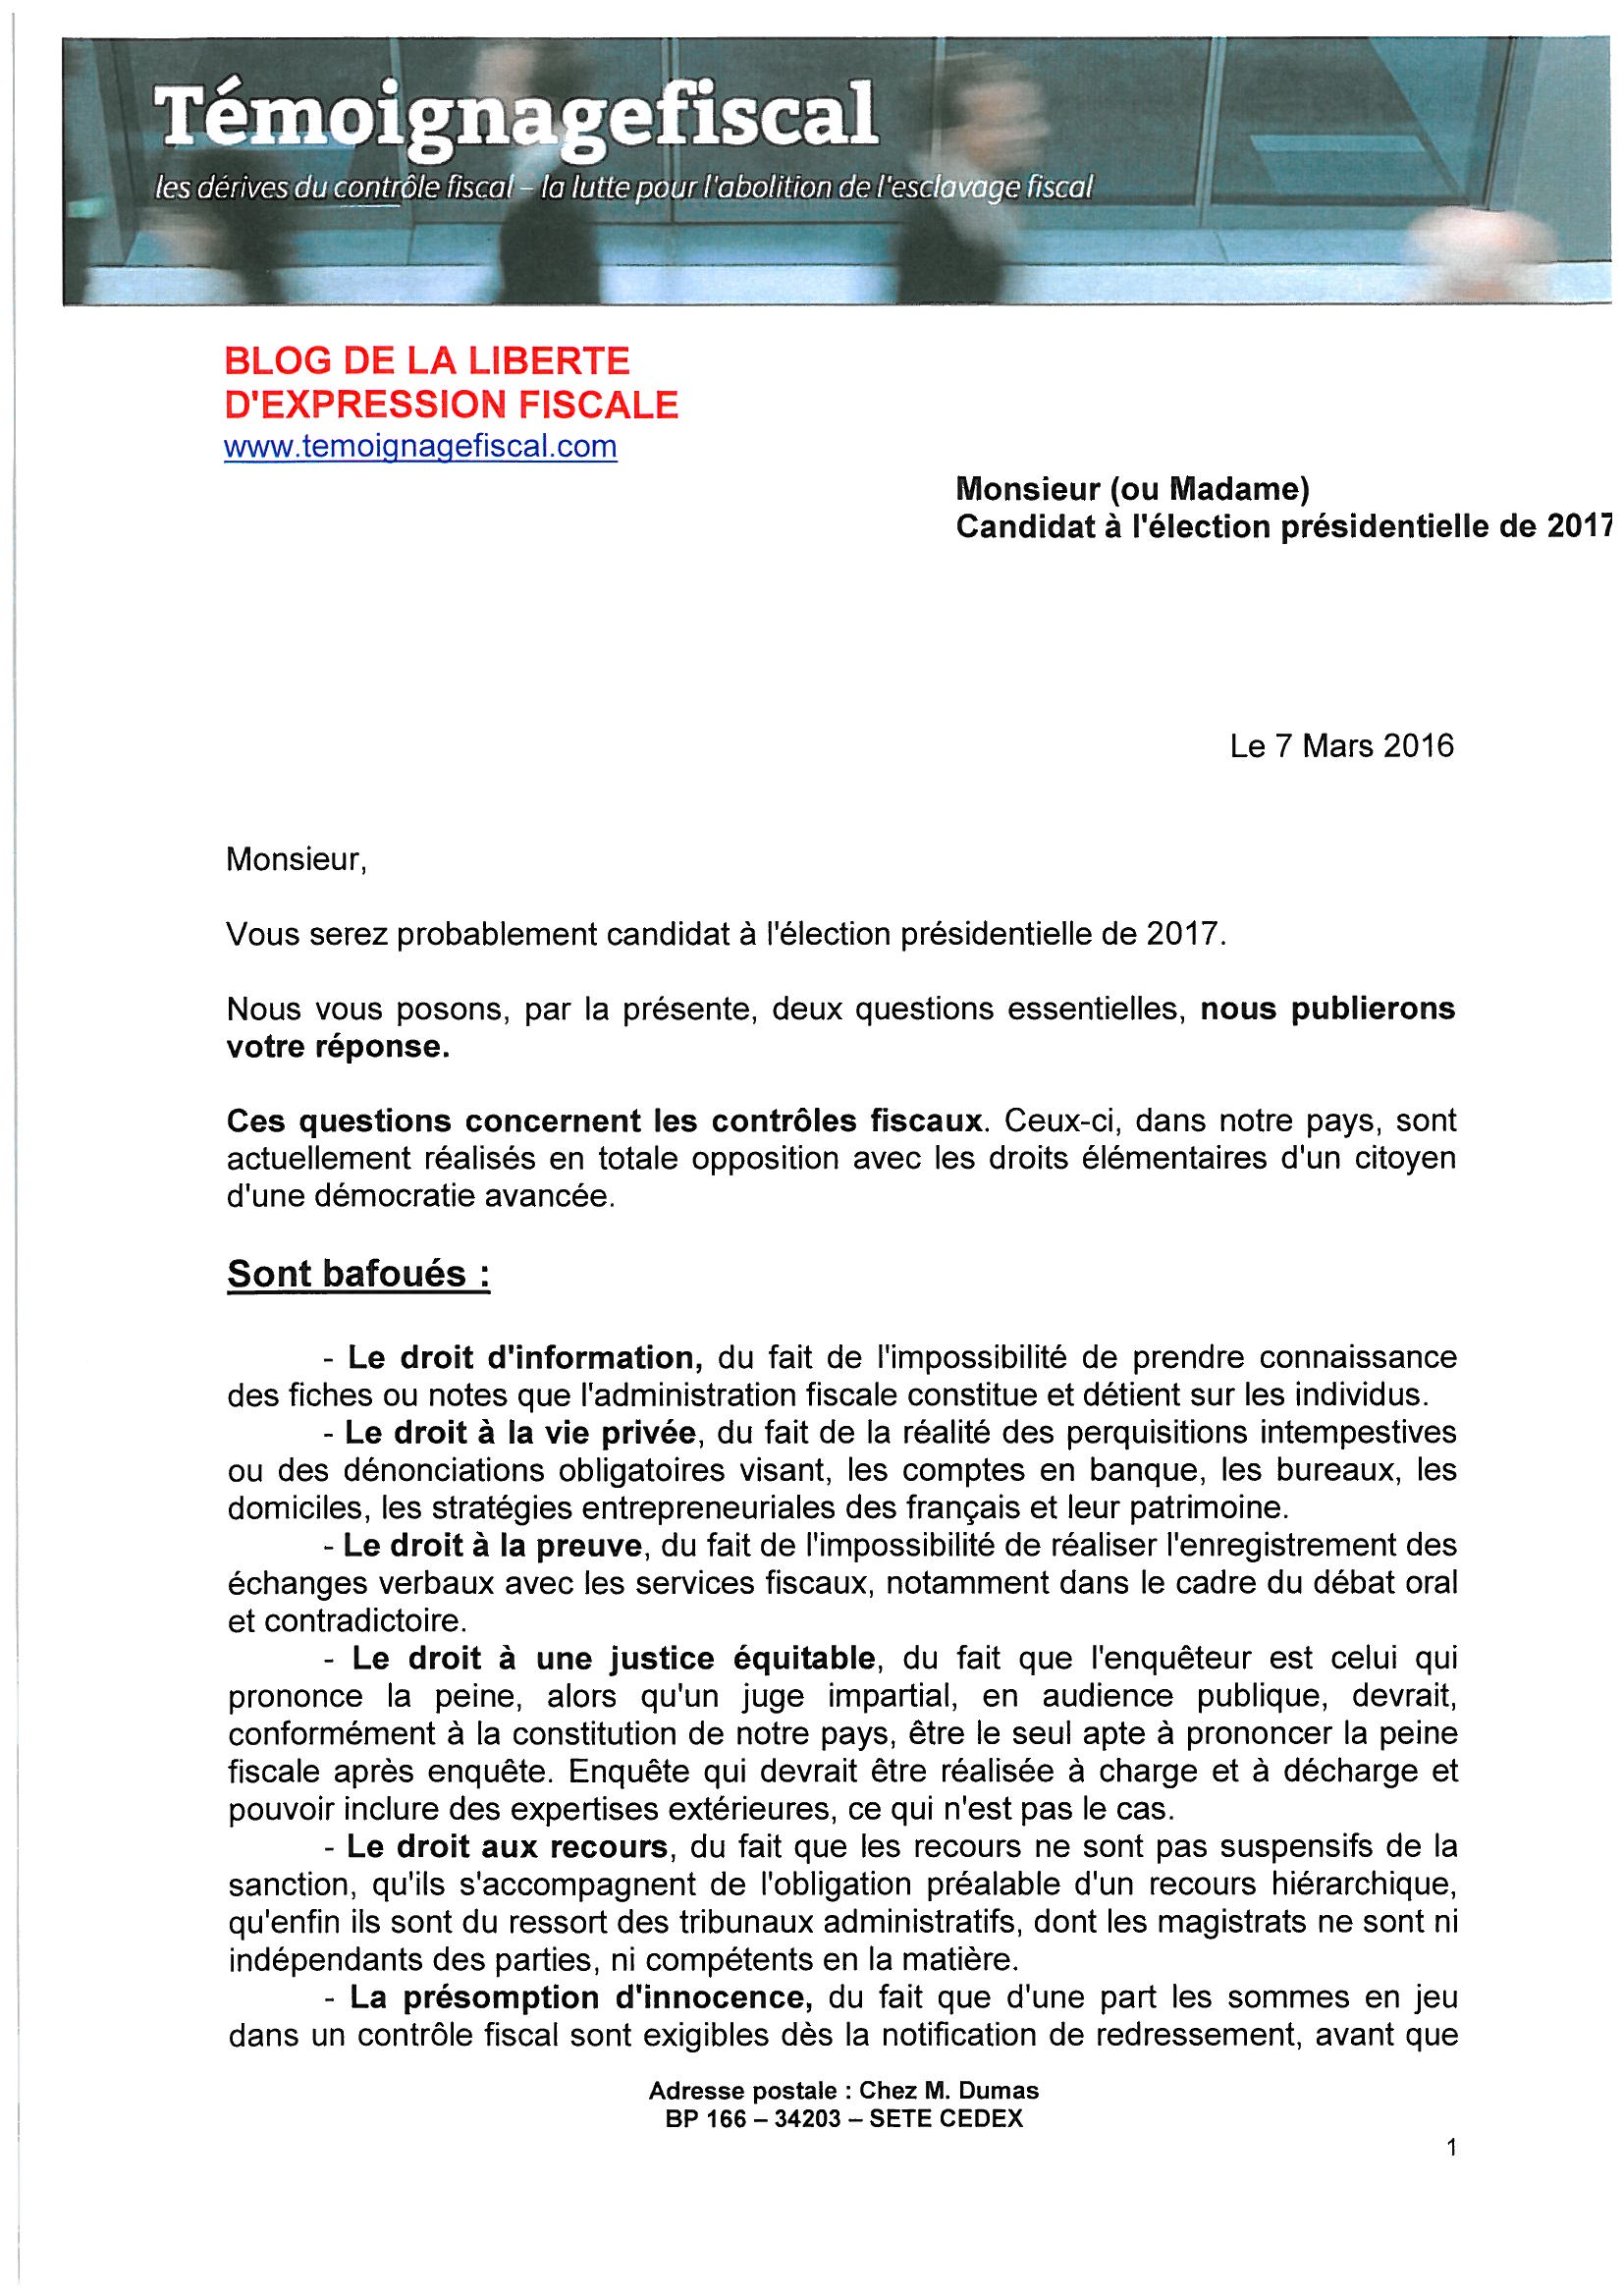 Lettre-candidat-1